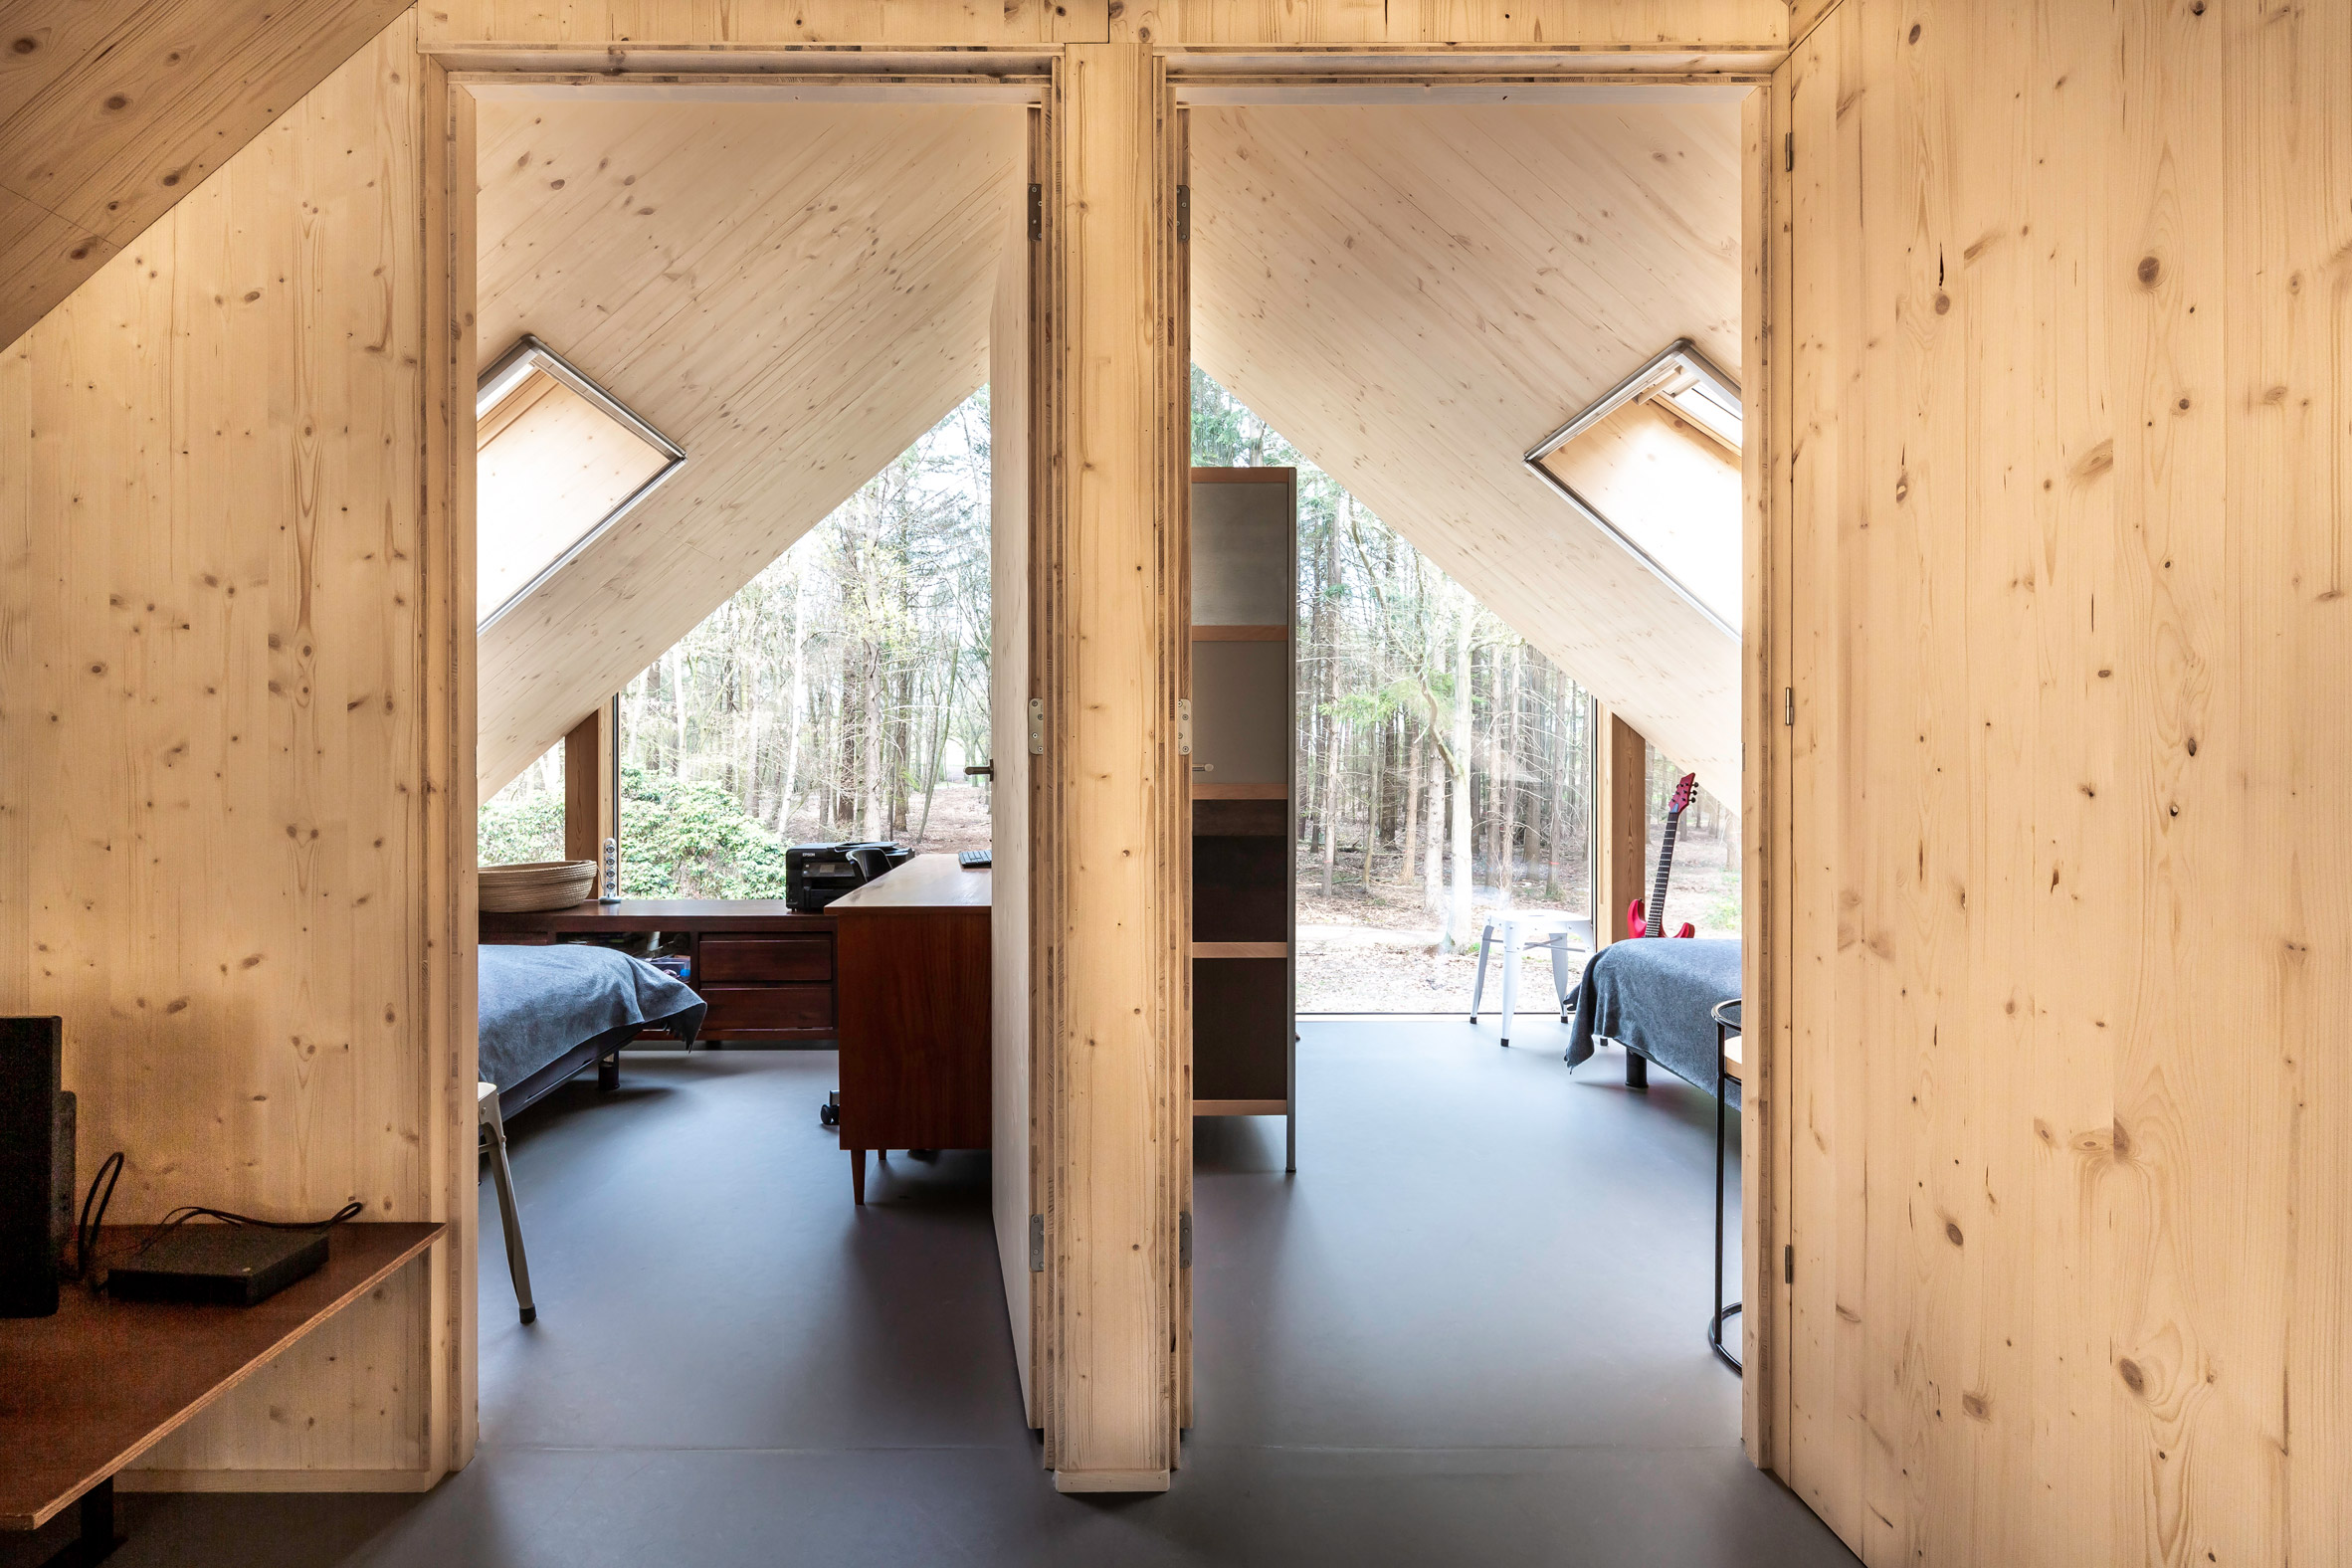 Wood-lined bedrooms in a forest cabin